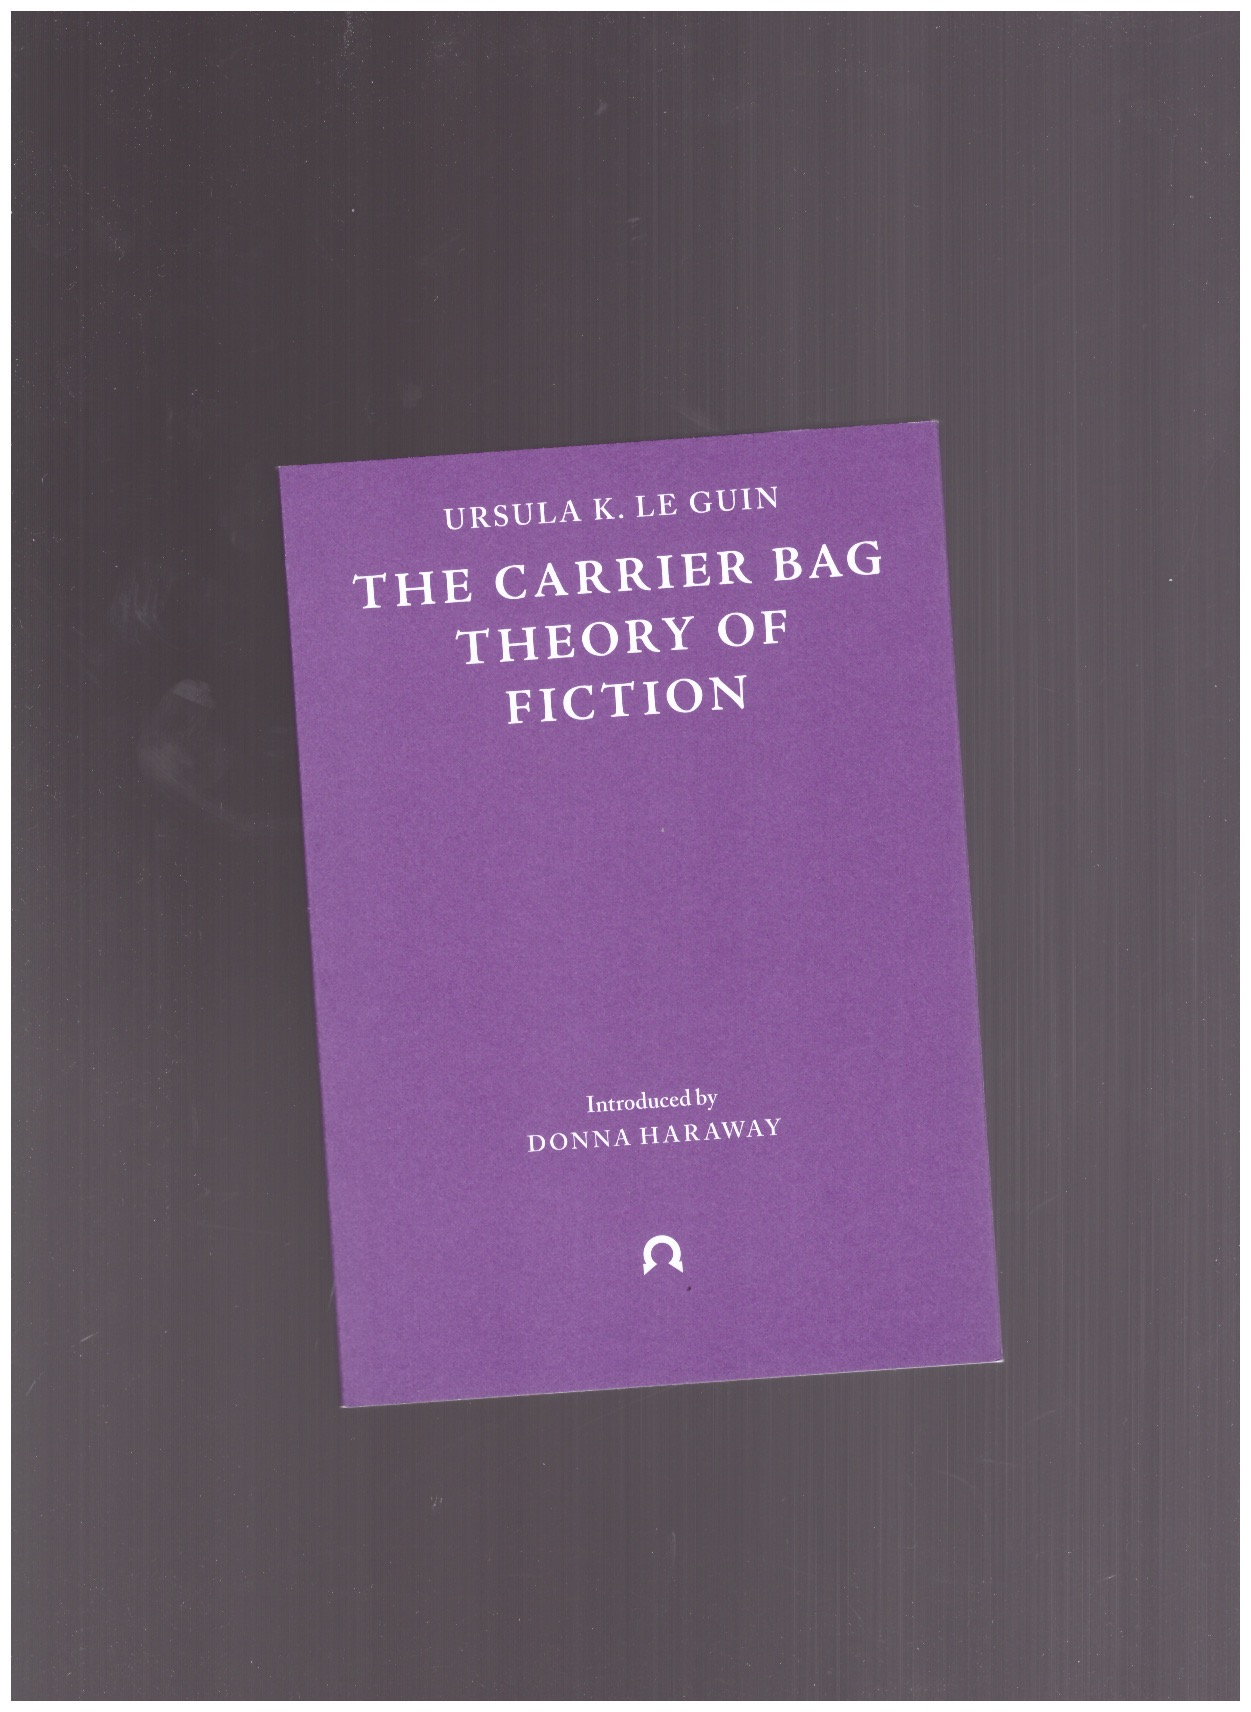 LE GUIN, Ursula K. - The Carrier Bag Theory of Fiction